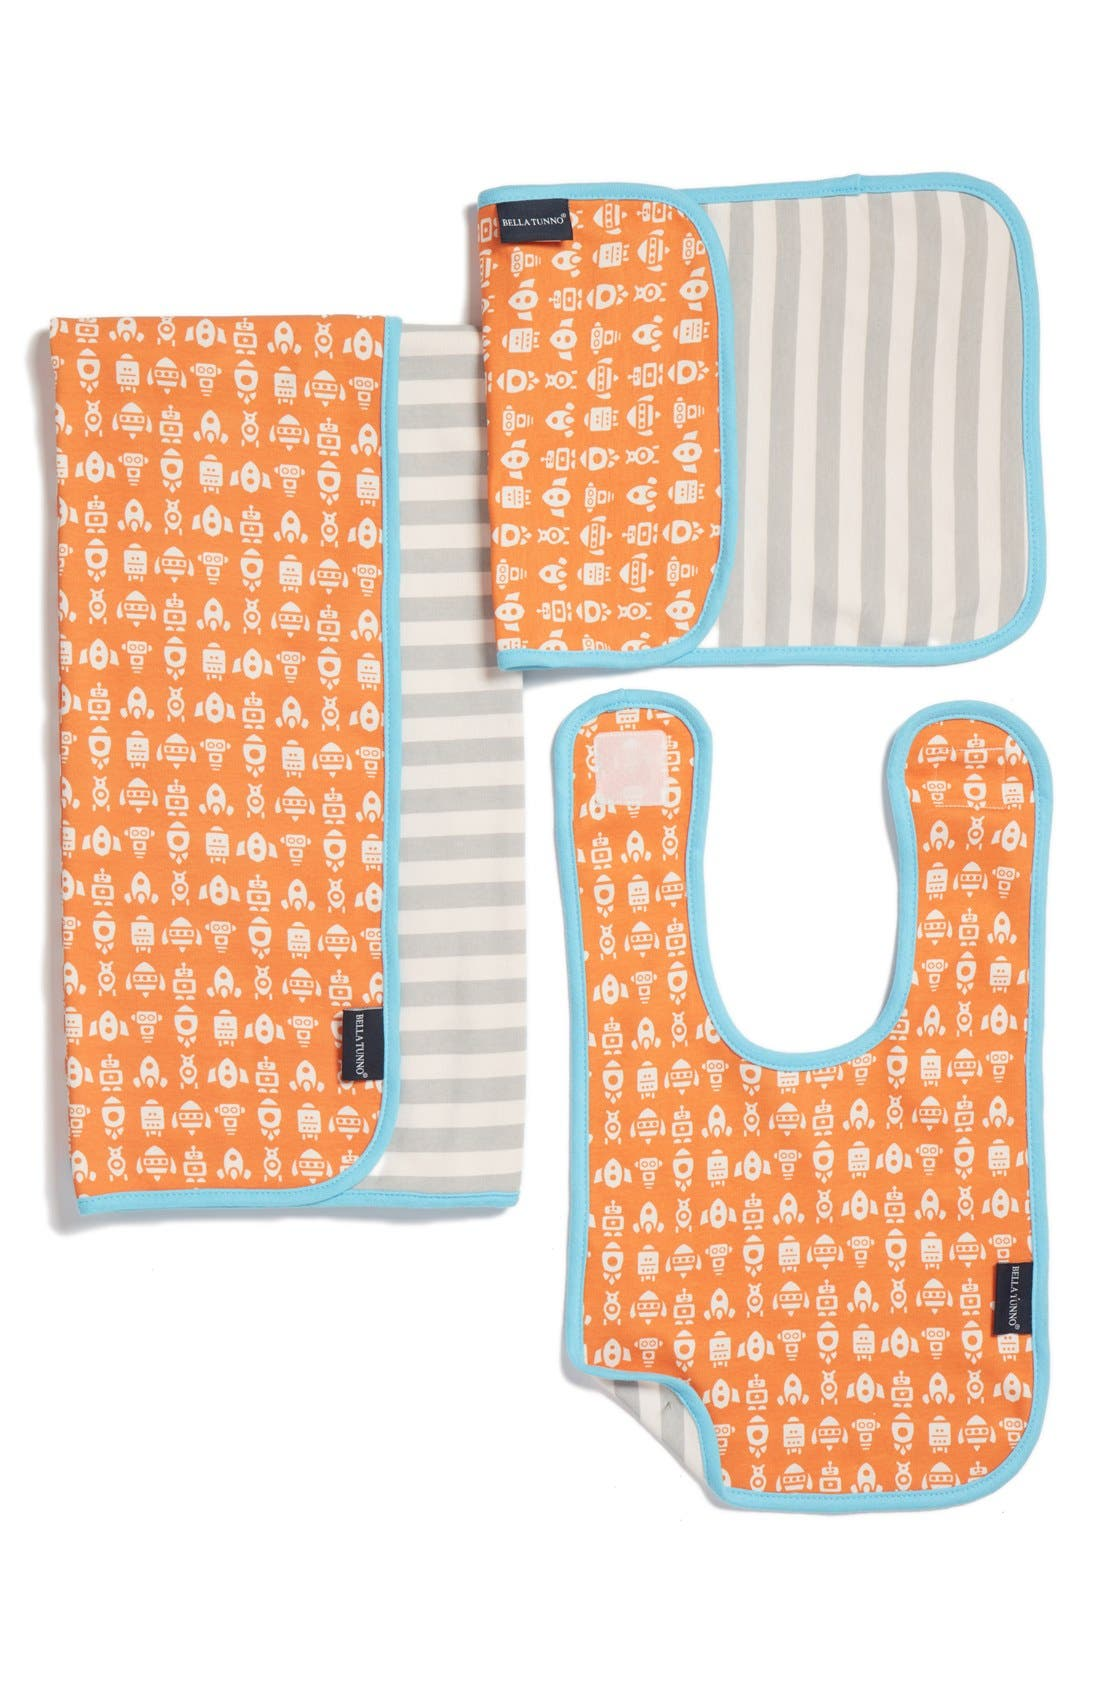 BELLA TUNNO Bib, Burpie Cloth & Play Mat